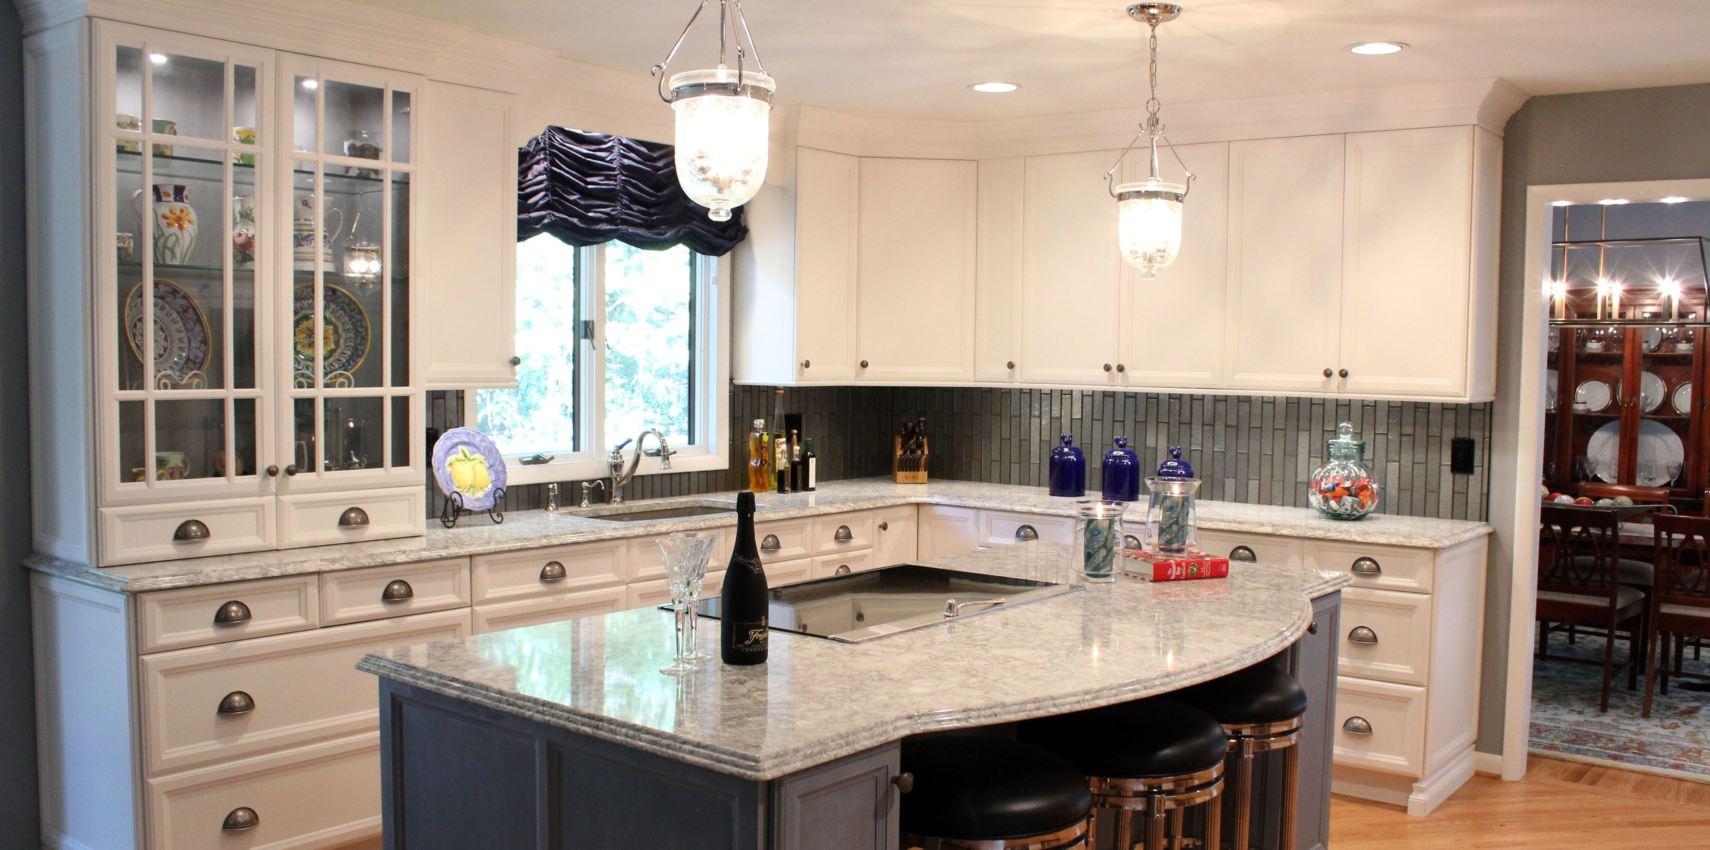 Home Design Remodeling Grandior Kitchen Bath Design Remodeling Cabinetry Residential